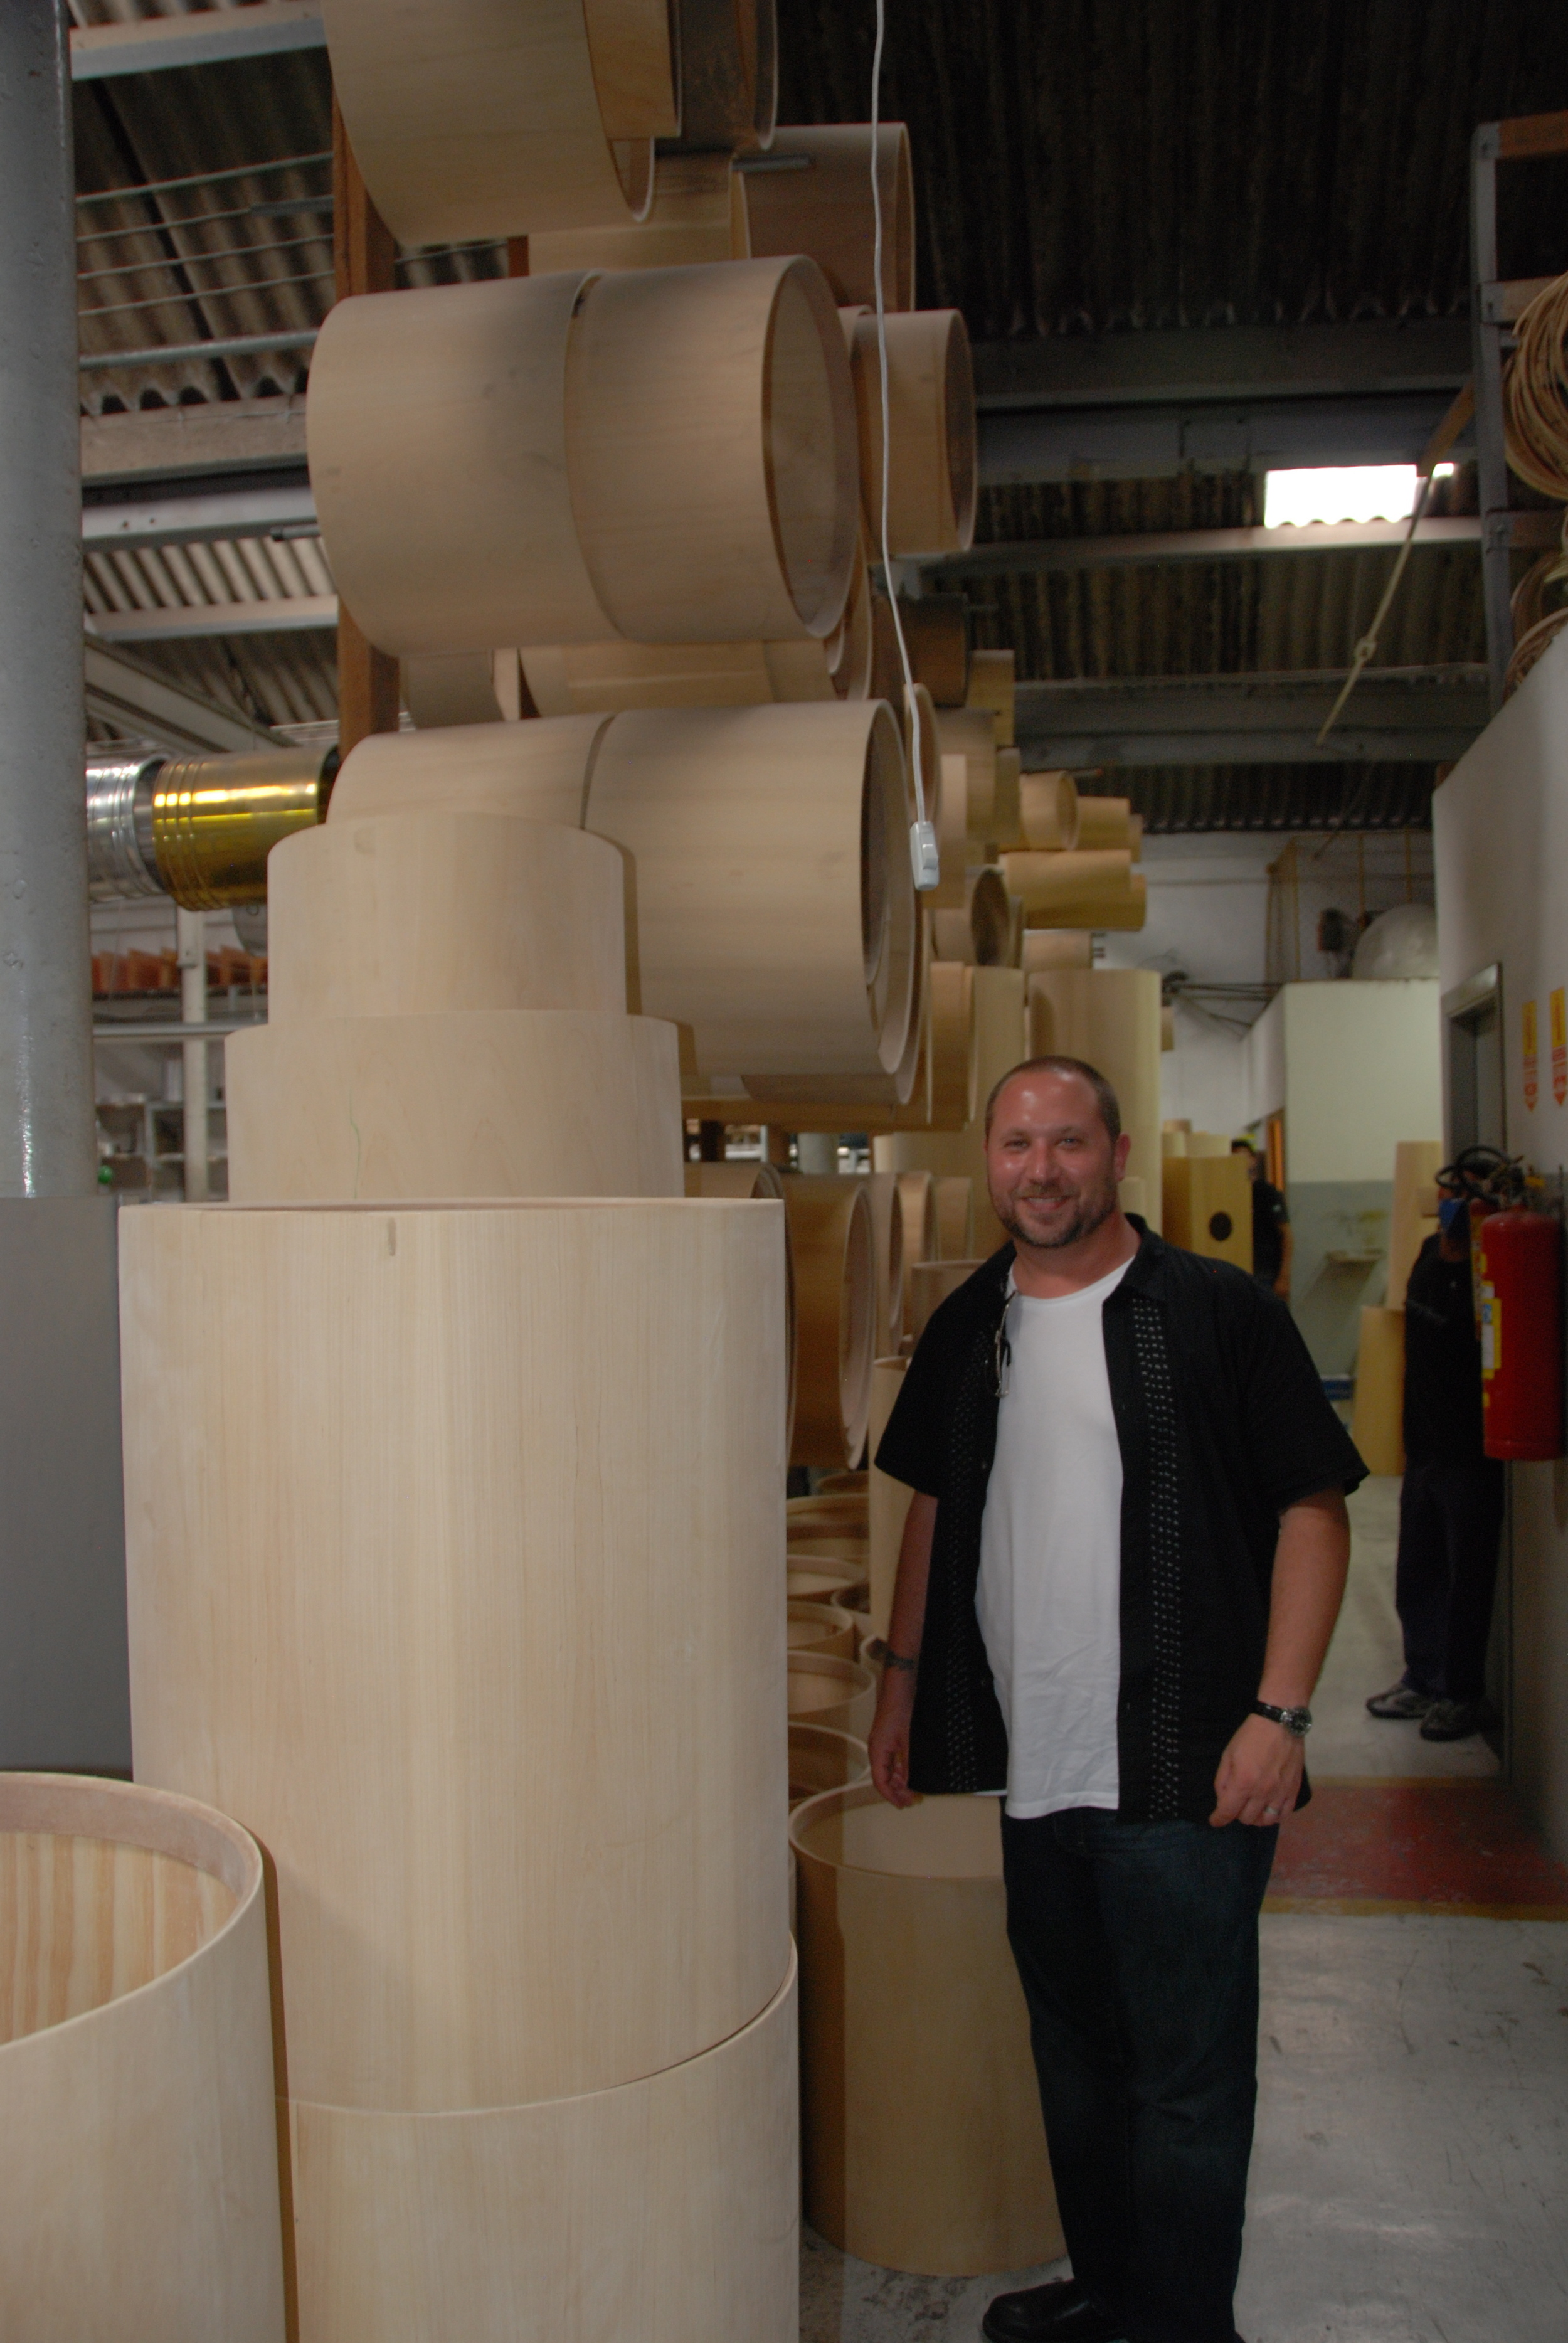 Randy at the Contemporanea factory in Sao Paulo Brazil, November 2009.